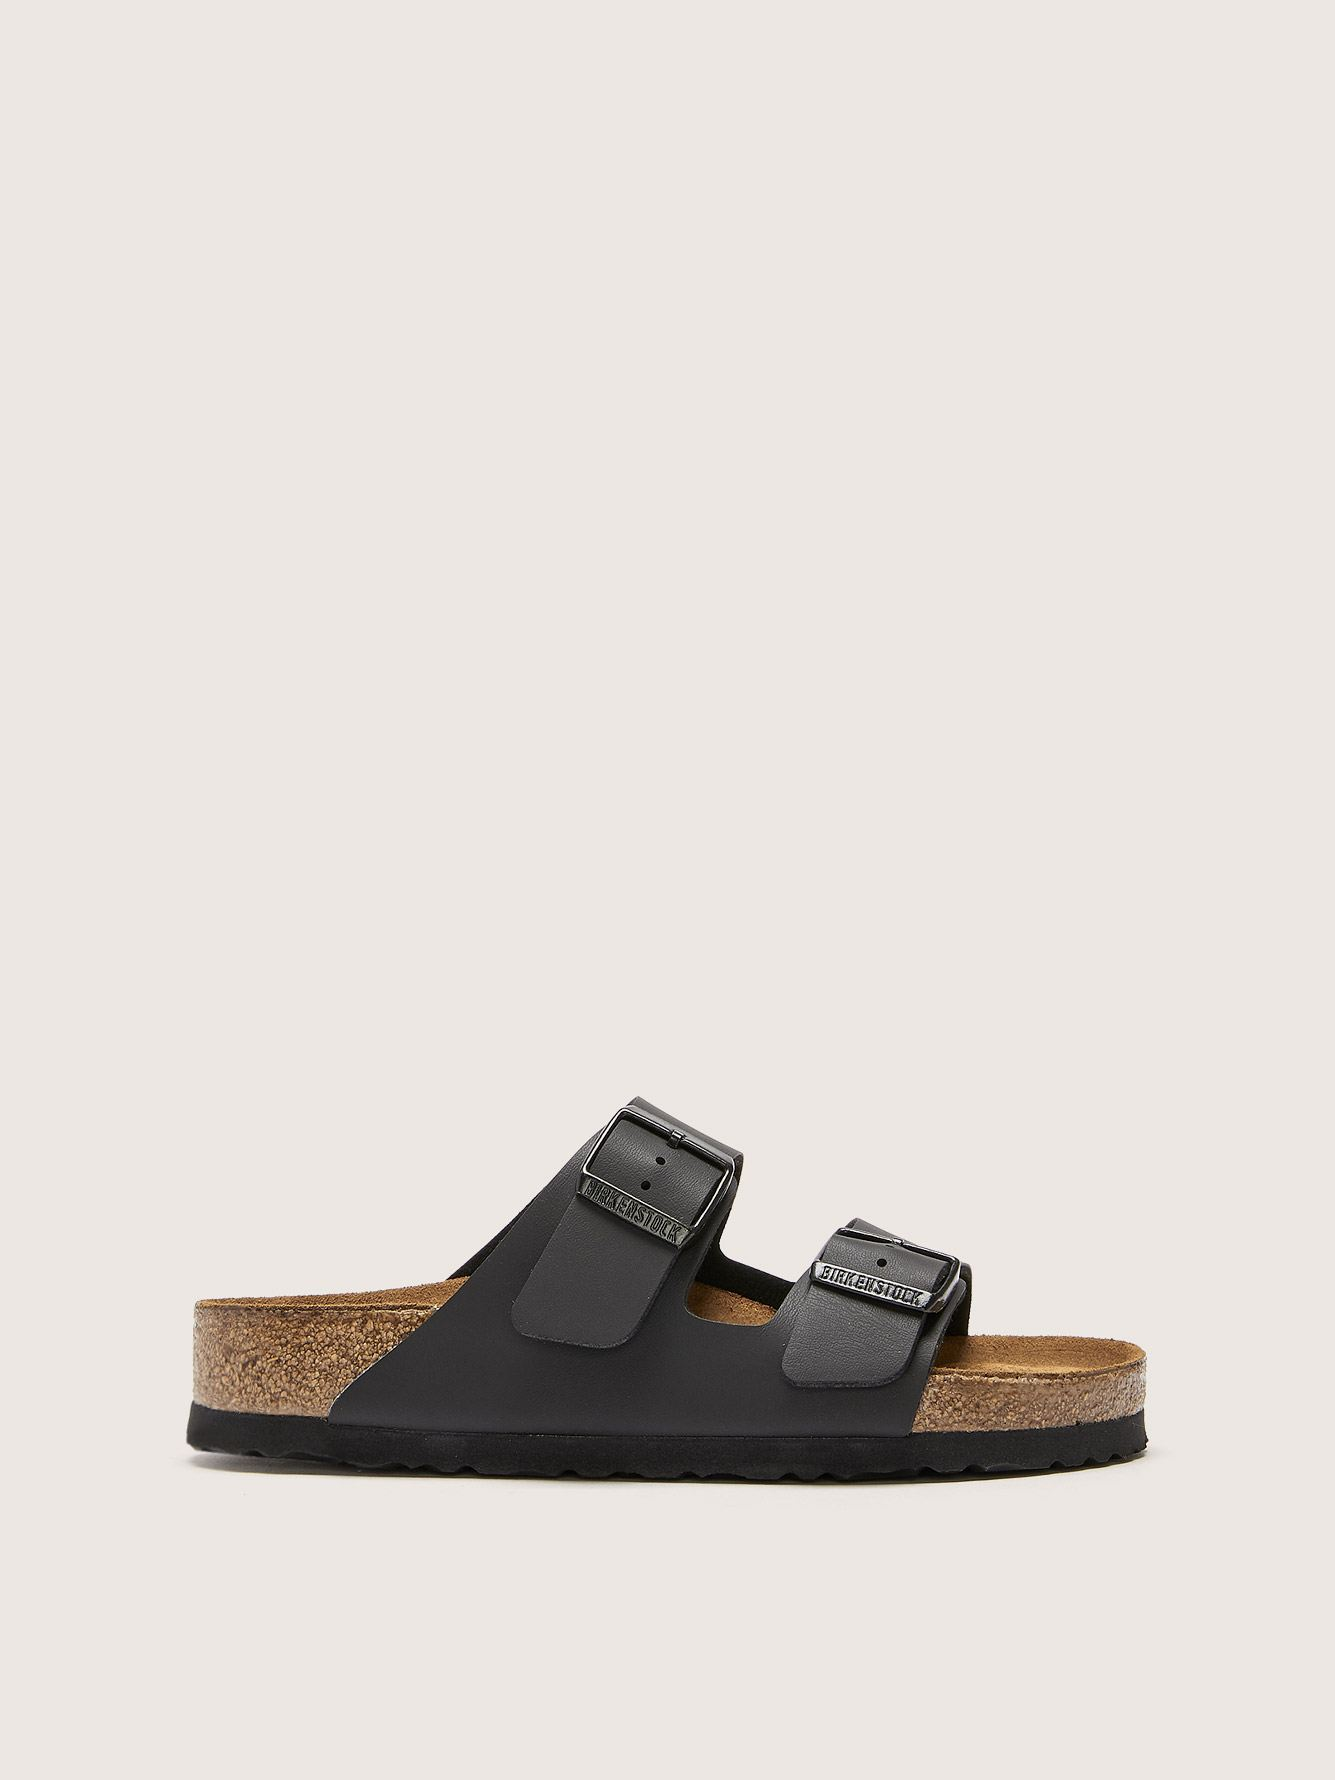 Soft 2-Strap Arizona Sandals - Birkenstock